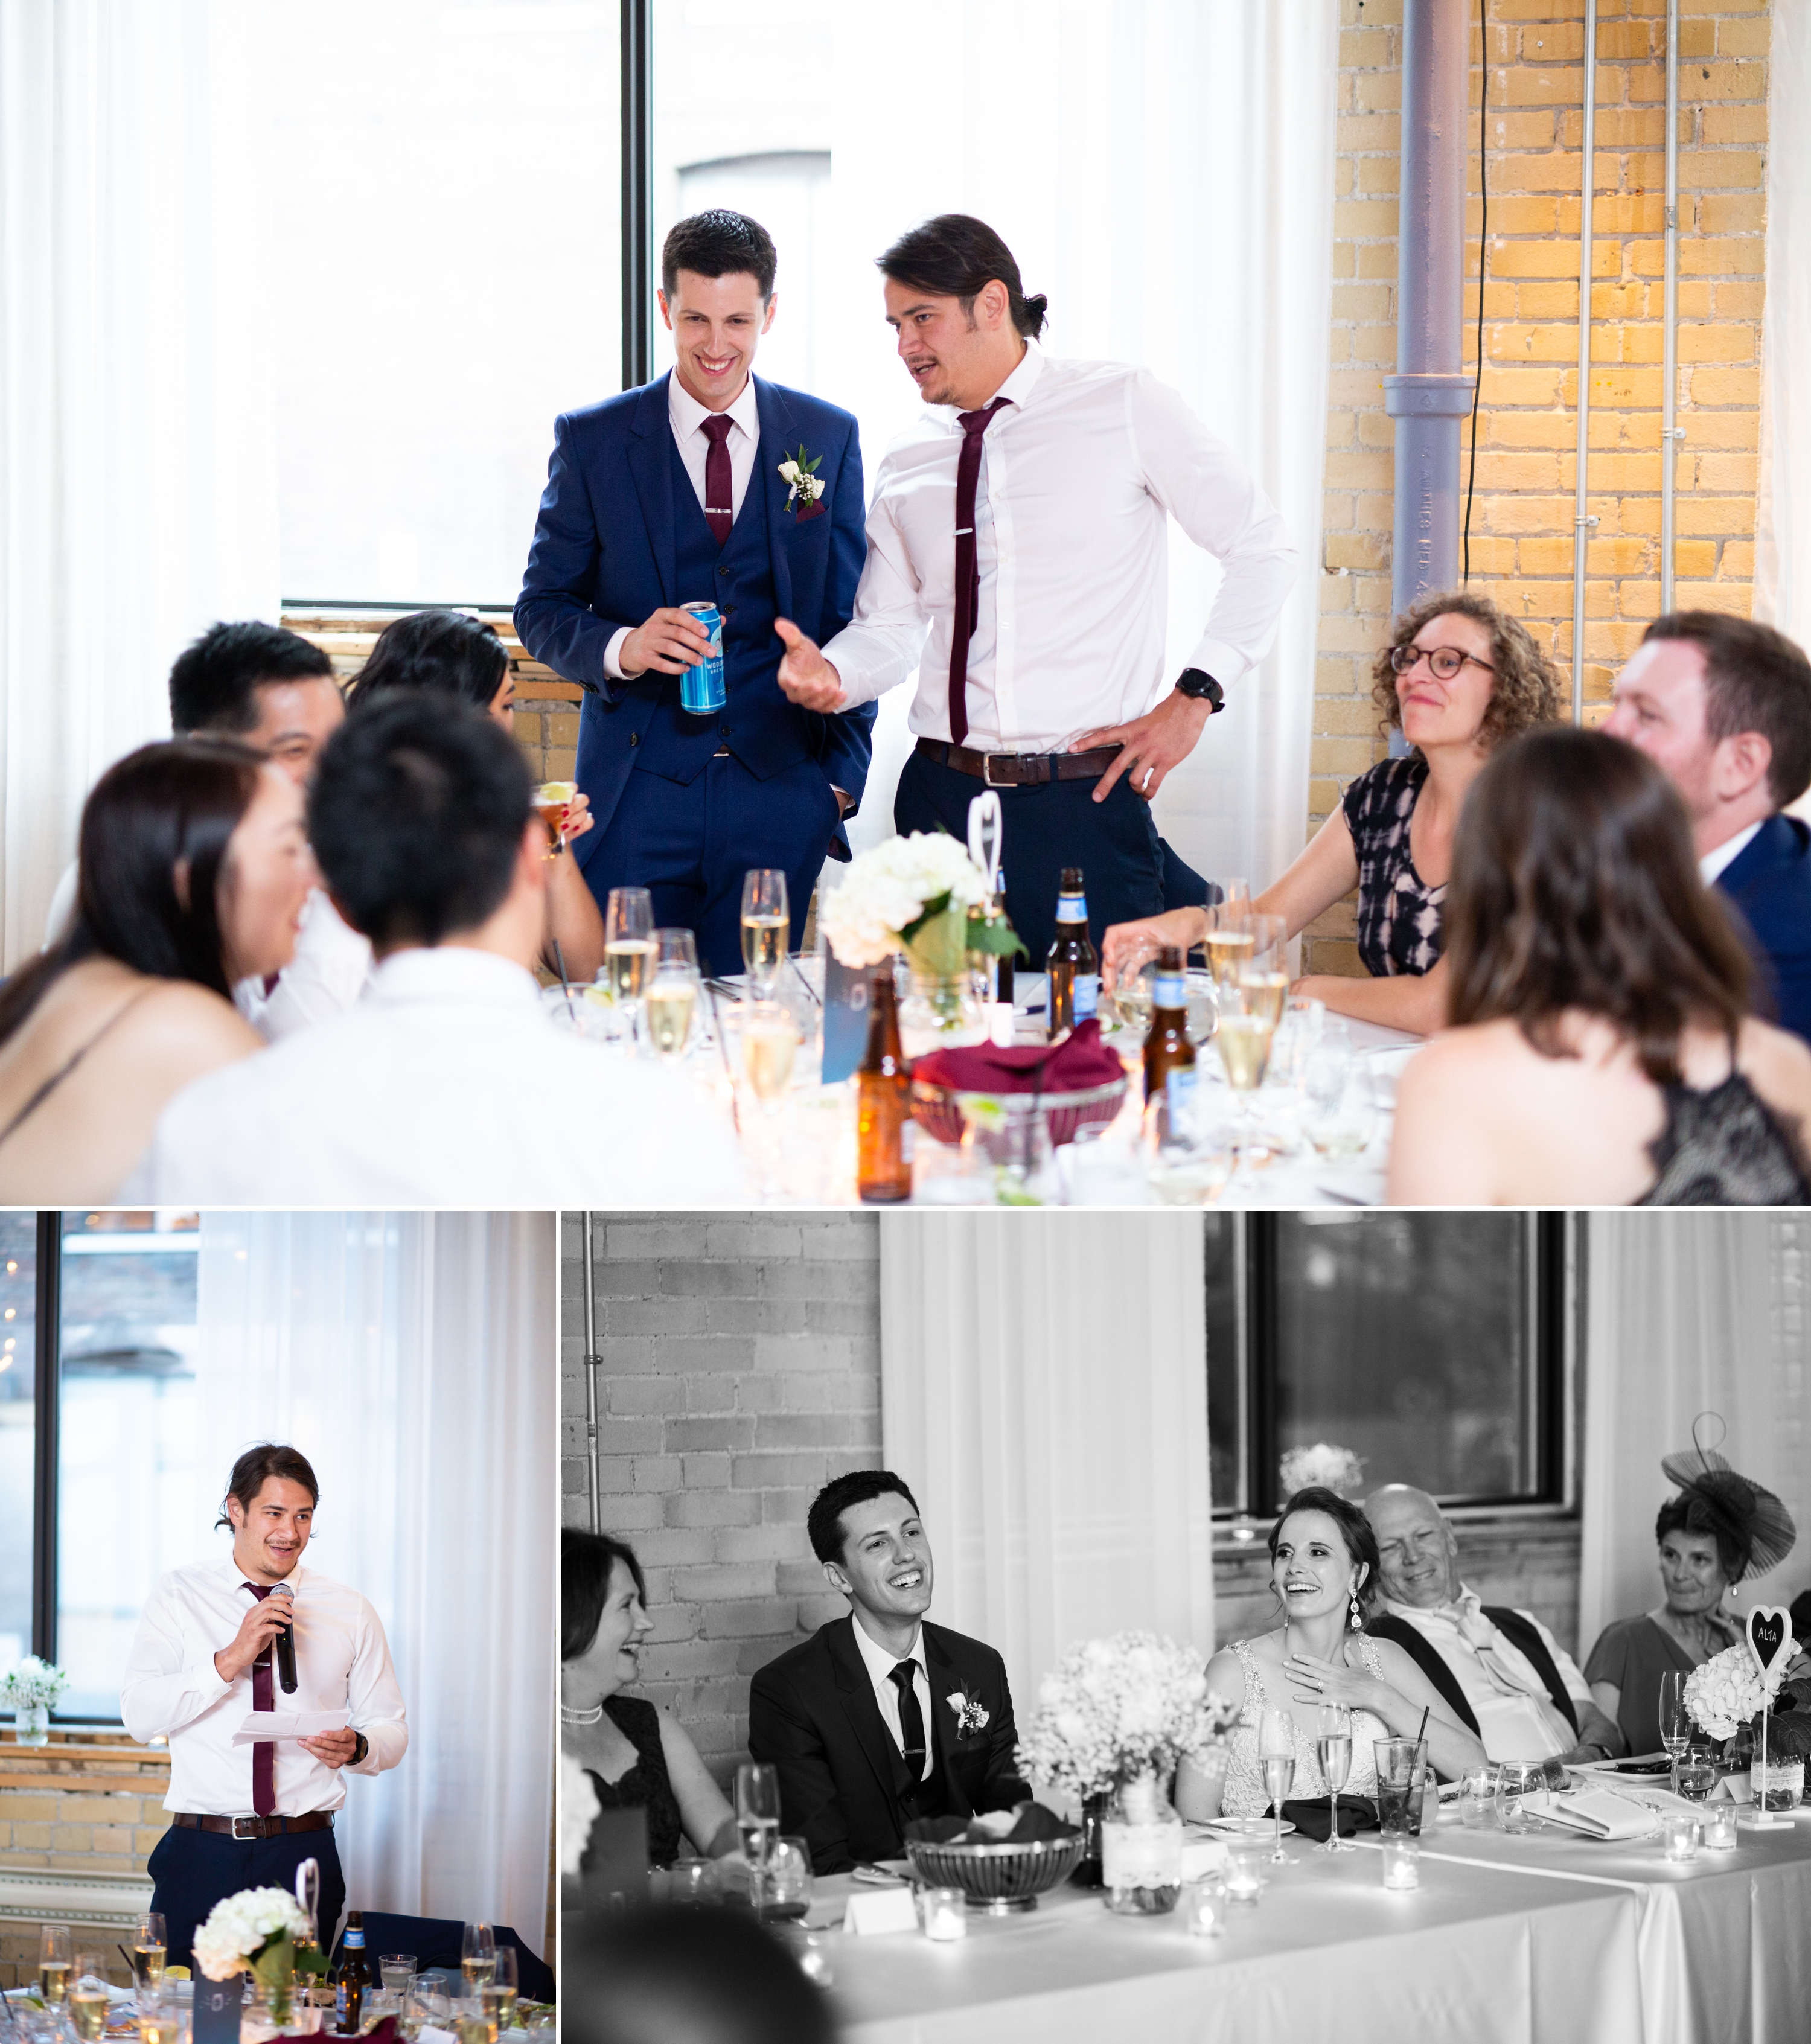 Reception Candids Toronto Wedding 2nd Floor Events Zsuzsi Pal Photography